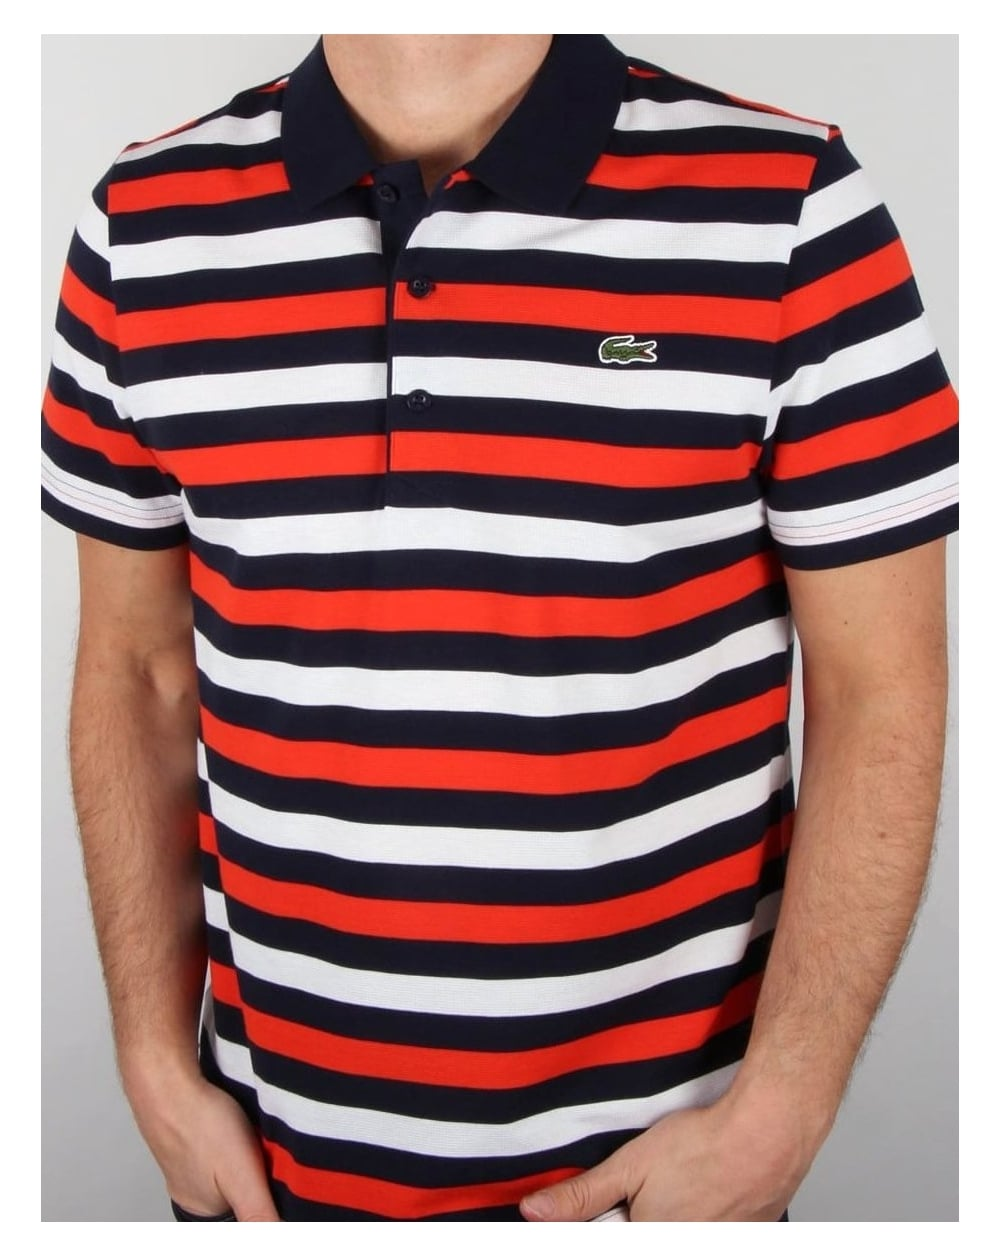 1a678782bdef2 Lacoste Lacoste Fine Stripe Polo Shirt Navy red white